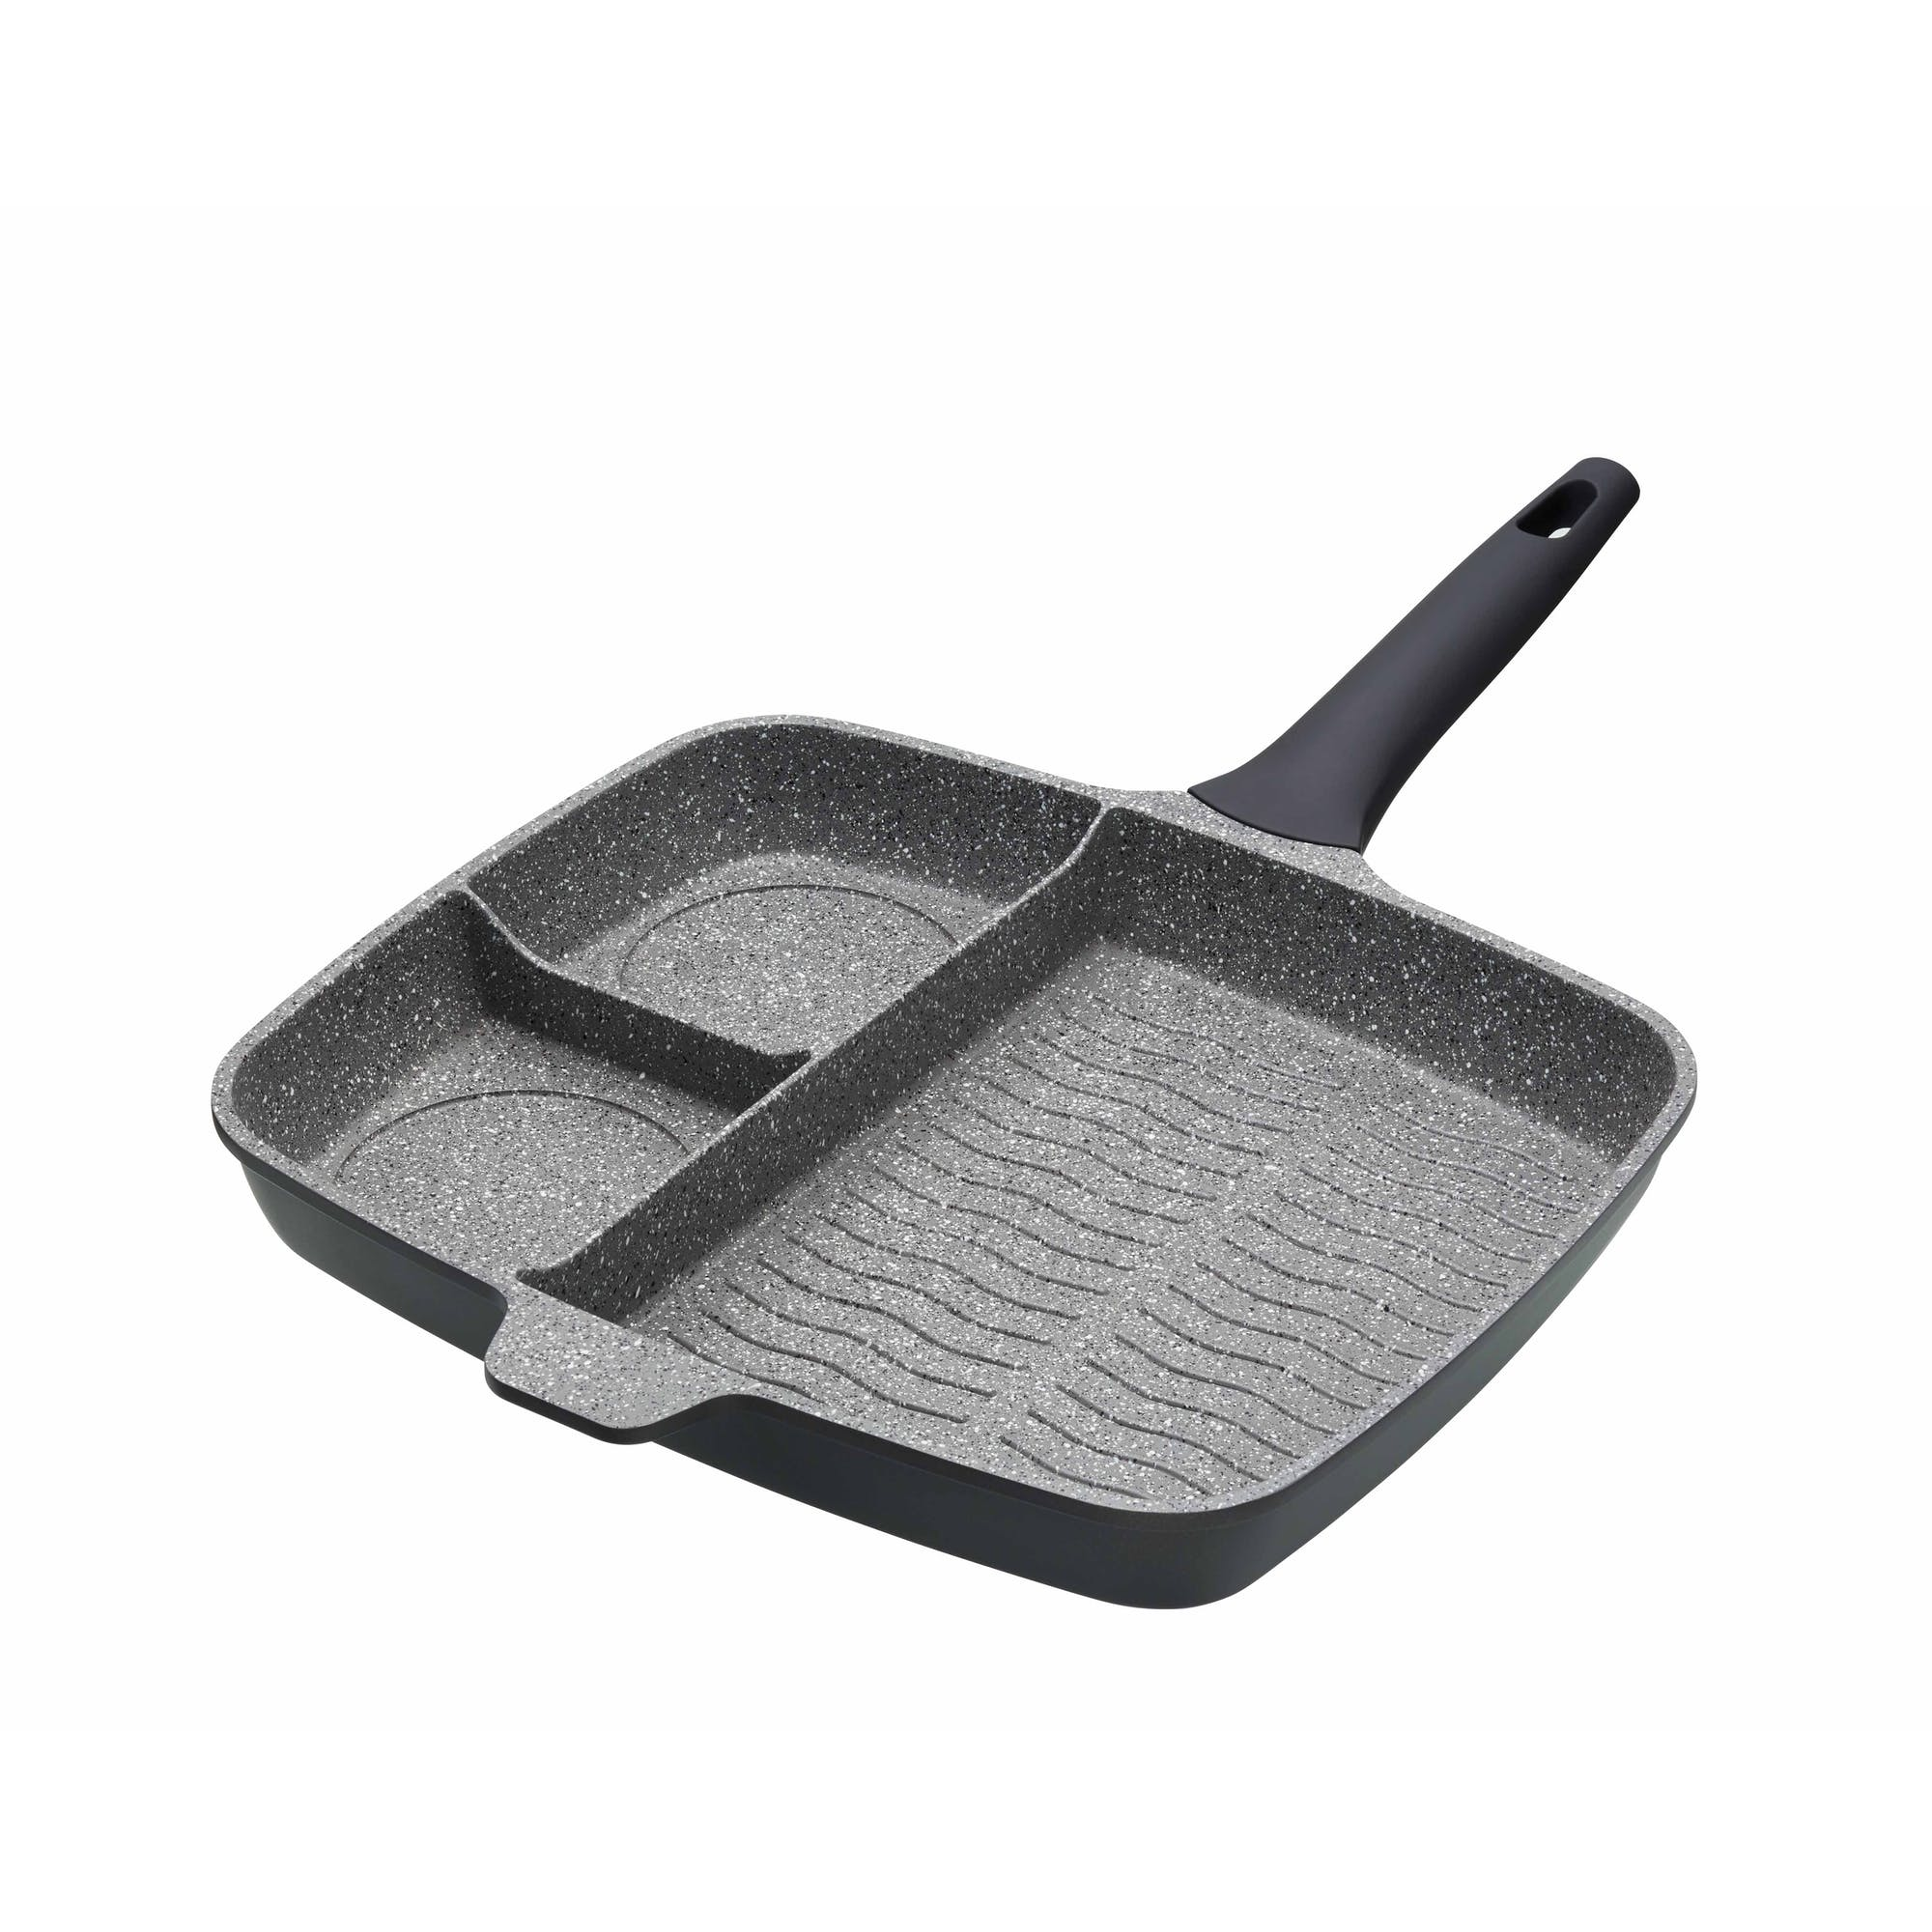 Masterclass Cast Aluminium Three Section Grill Pan Cast Aluminium